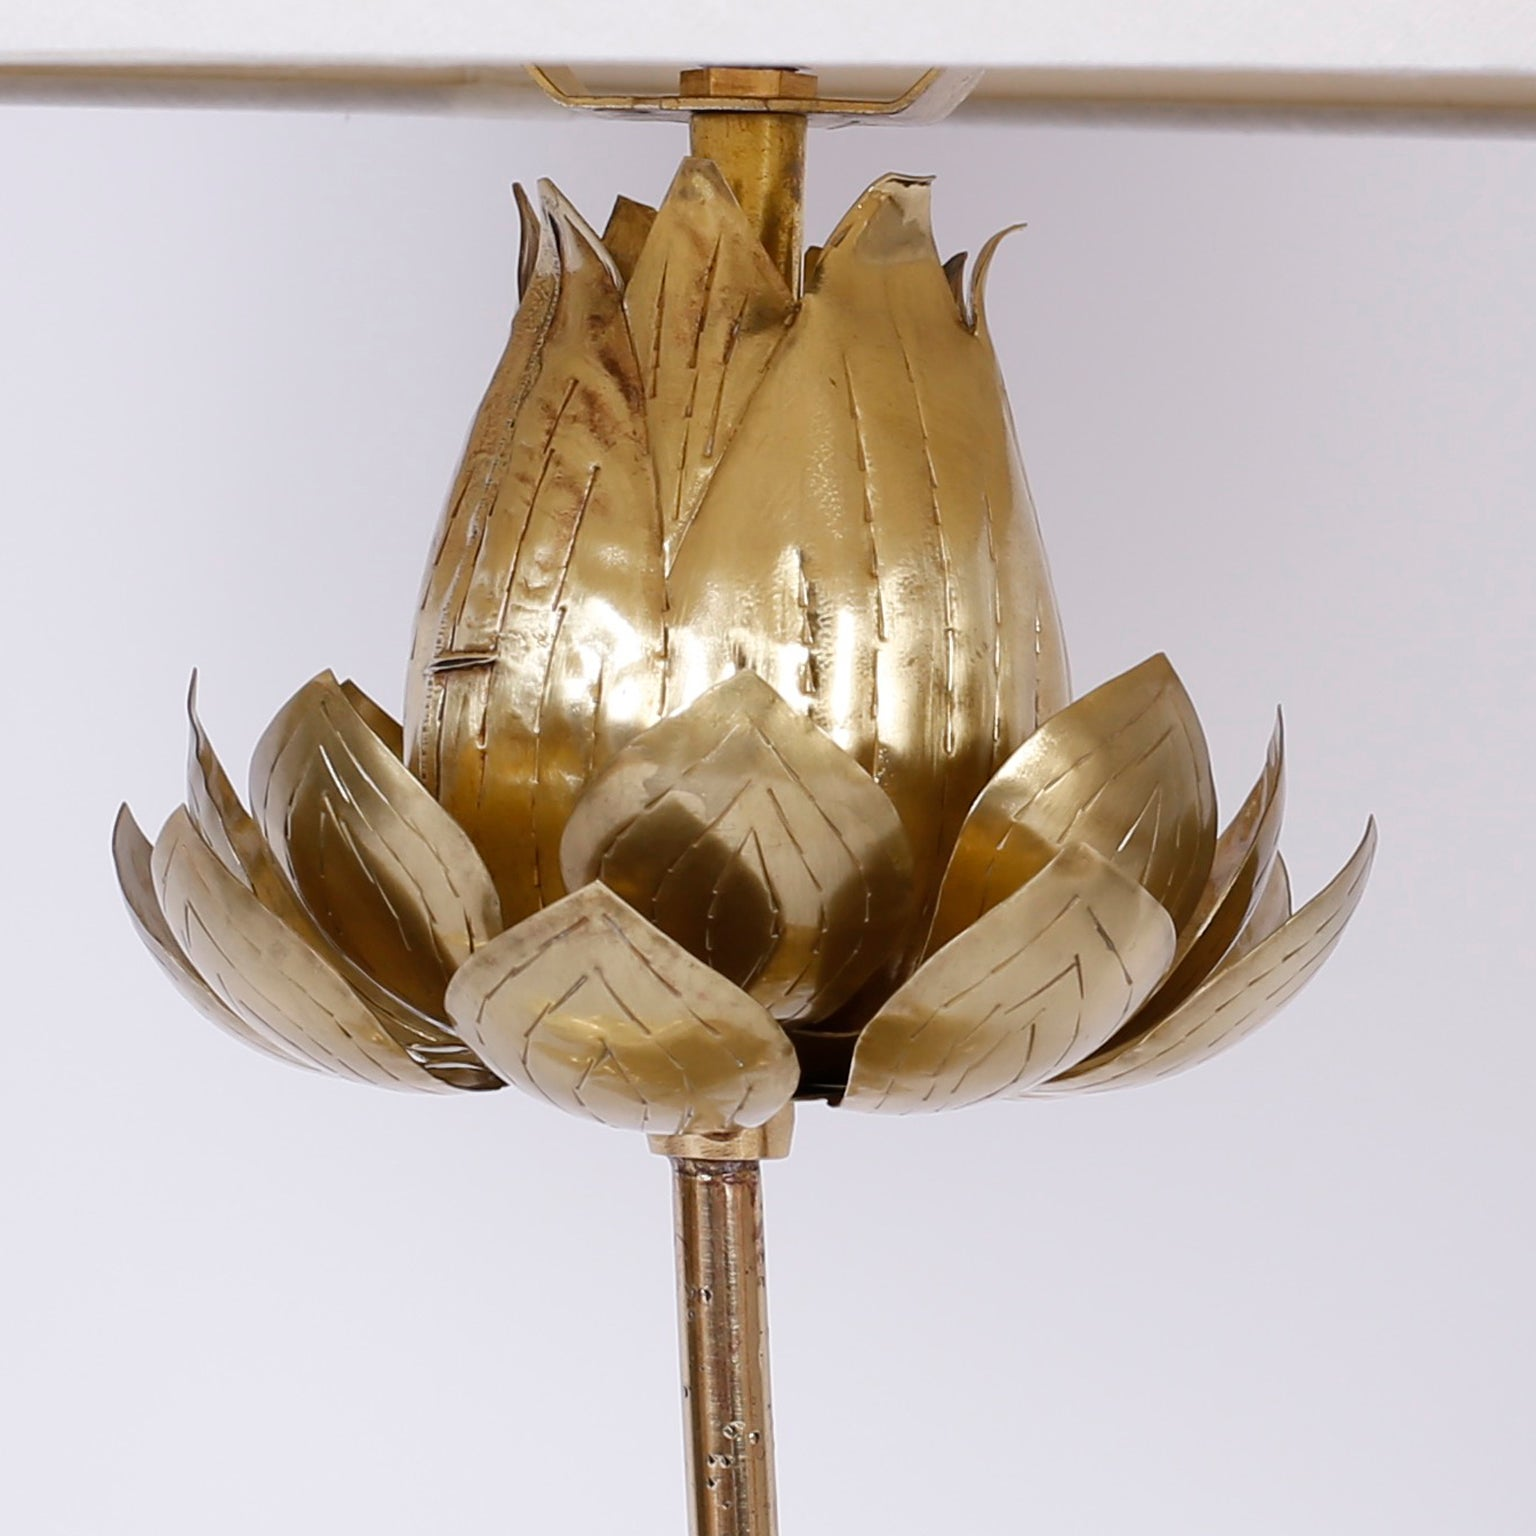 Tropical brass lotus flower table lamp for sale at 1stdibs izmirmasajfo